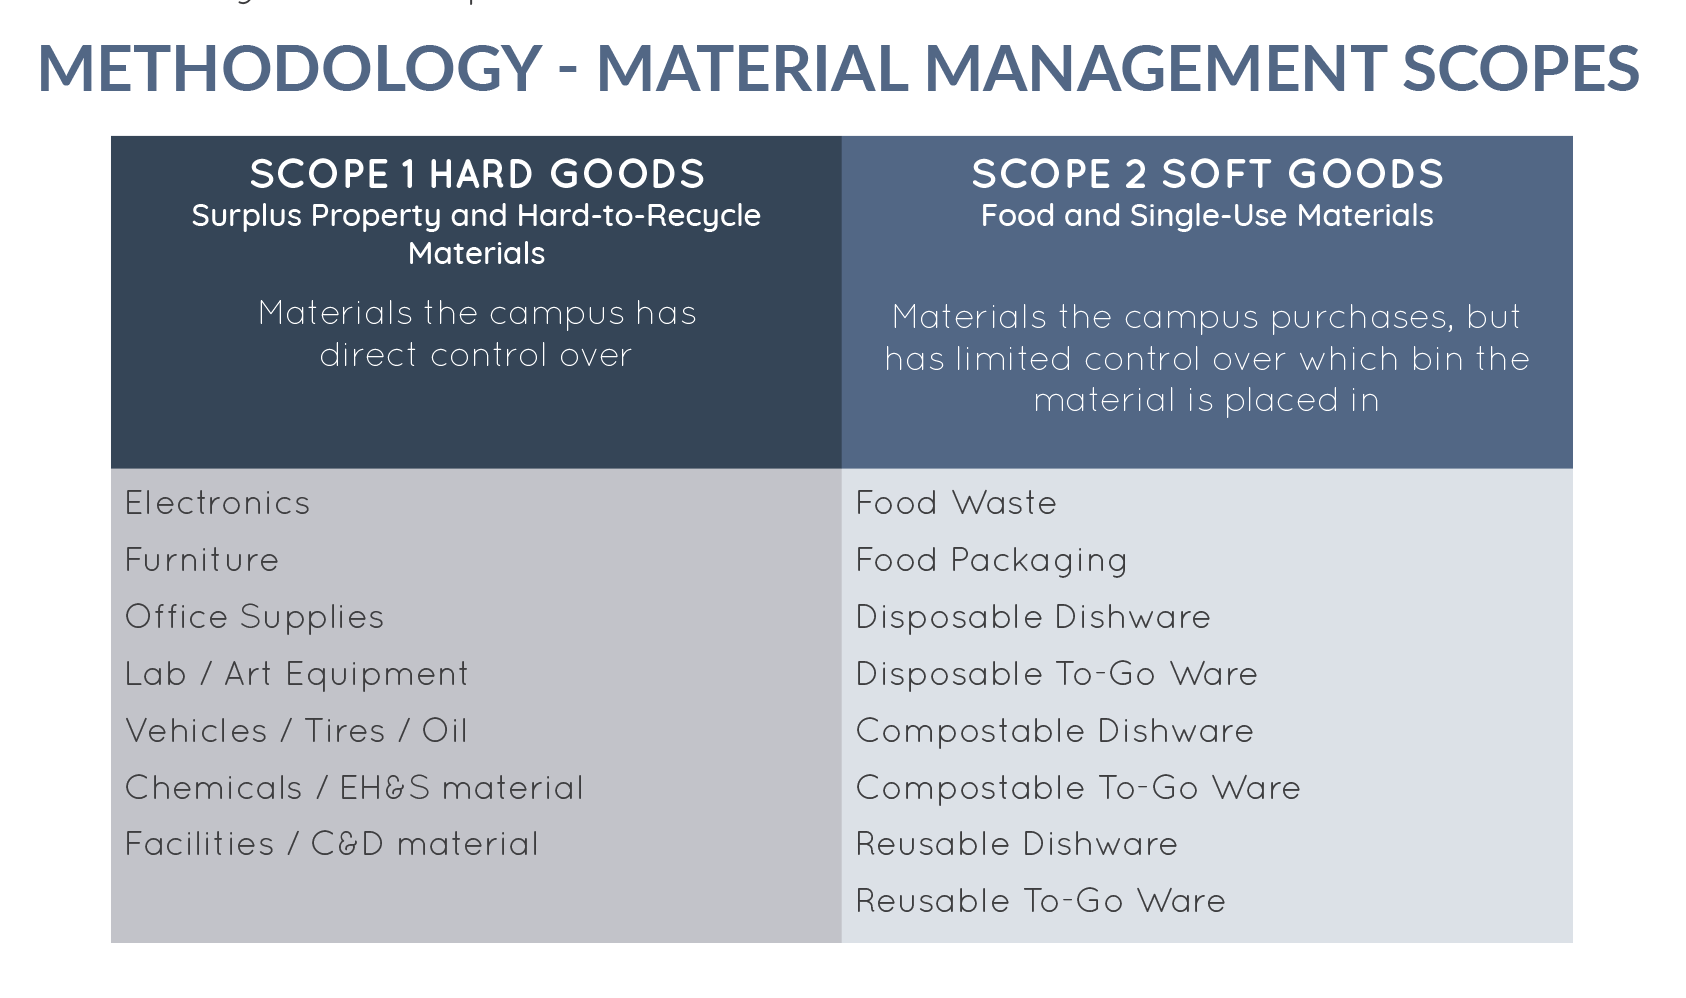 Table showing Scope 1 versus Scope 2 material management scores.